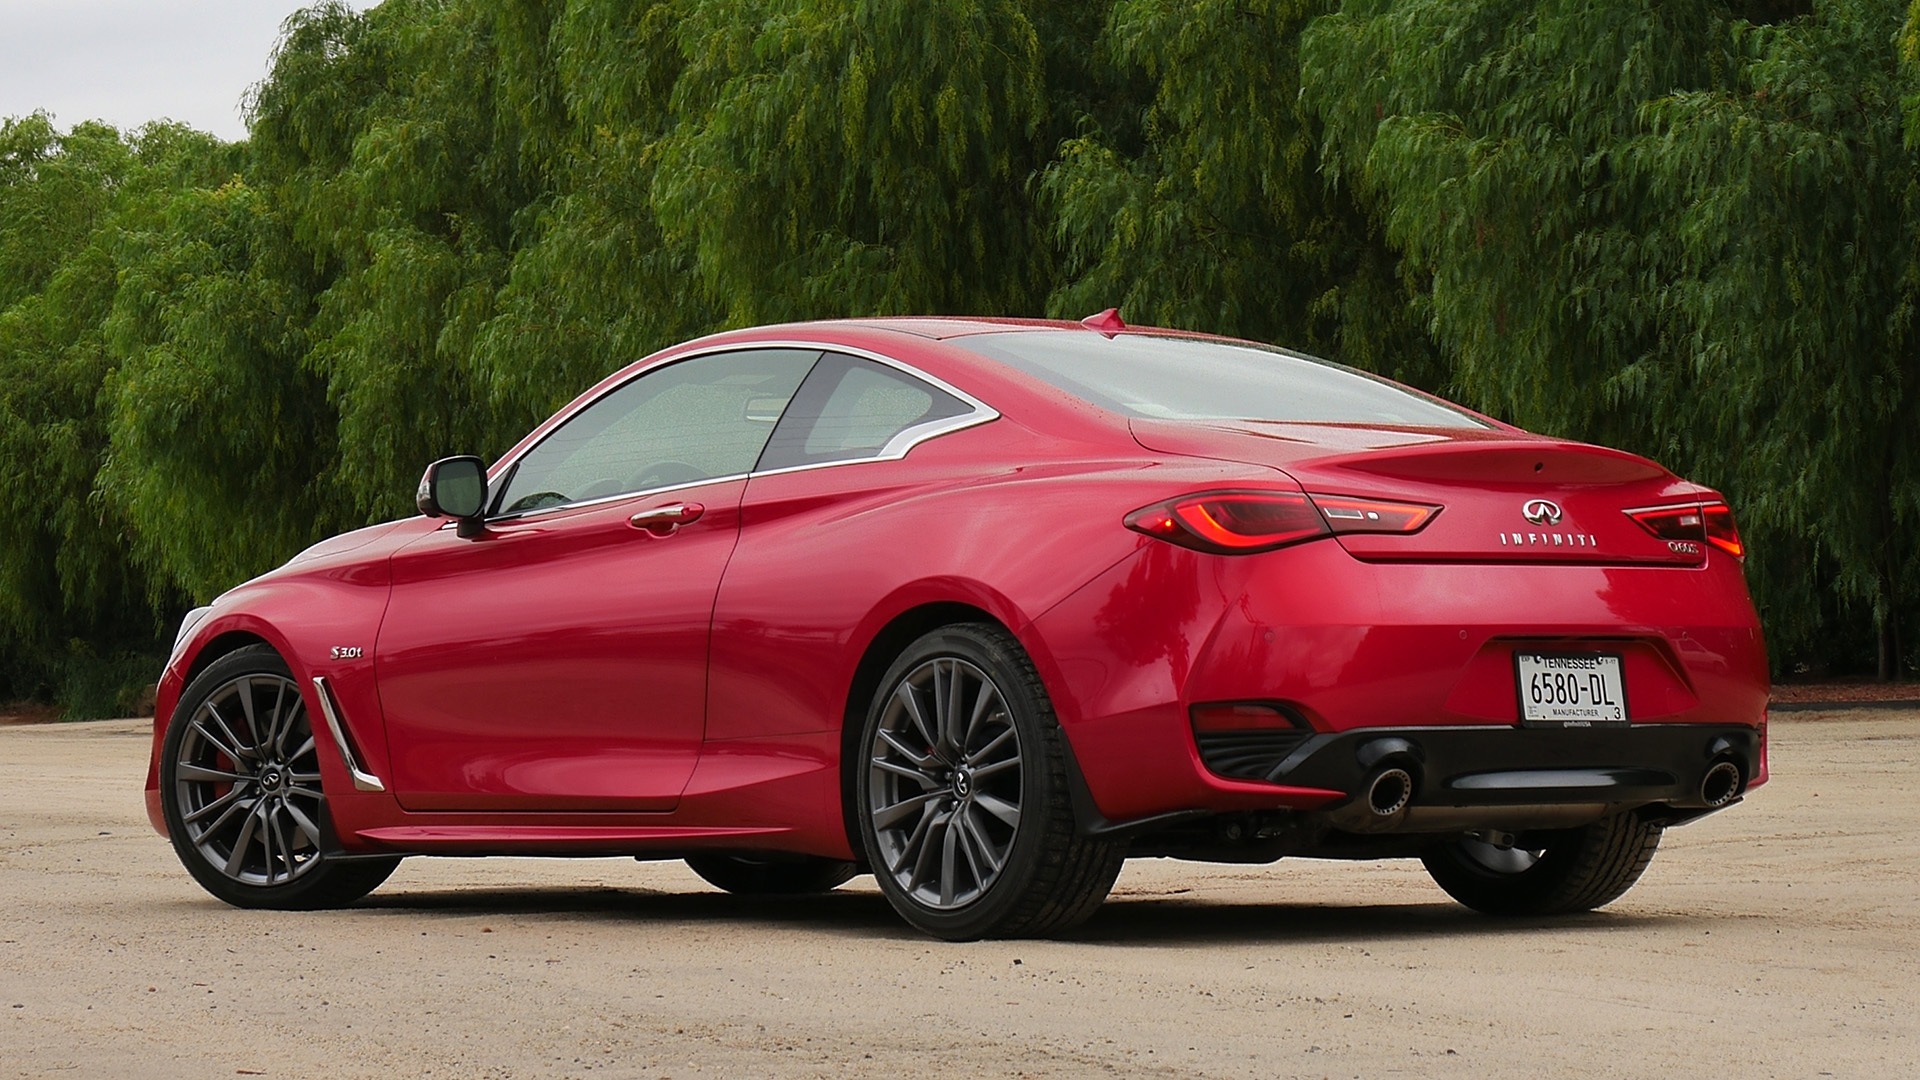 2017 Infiniti Q60 Red Exterior Rear And Side View (Photo 17 of 32)